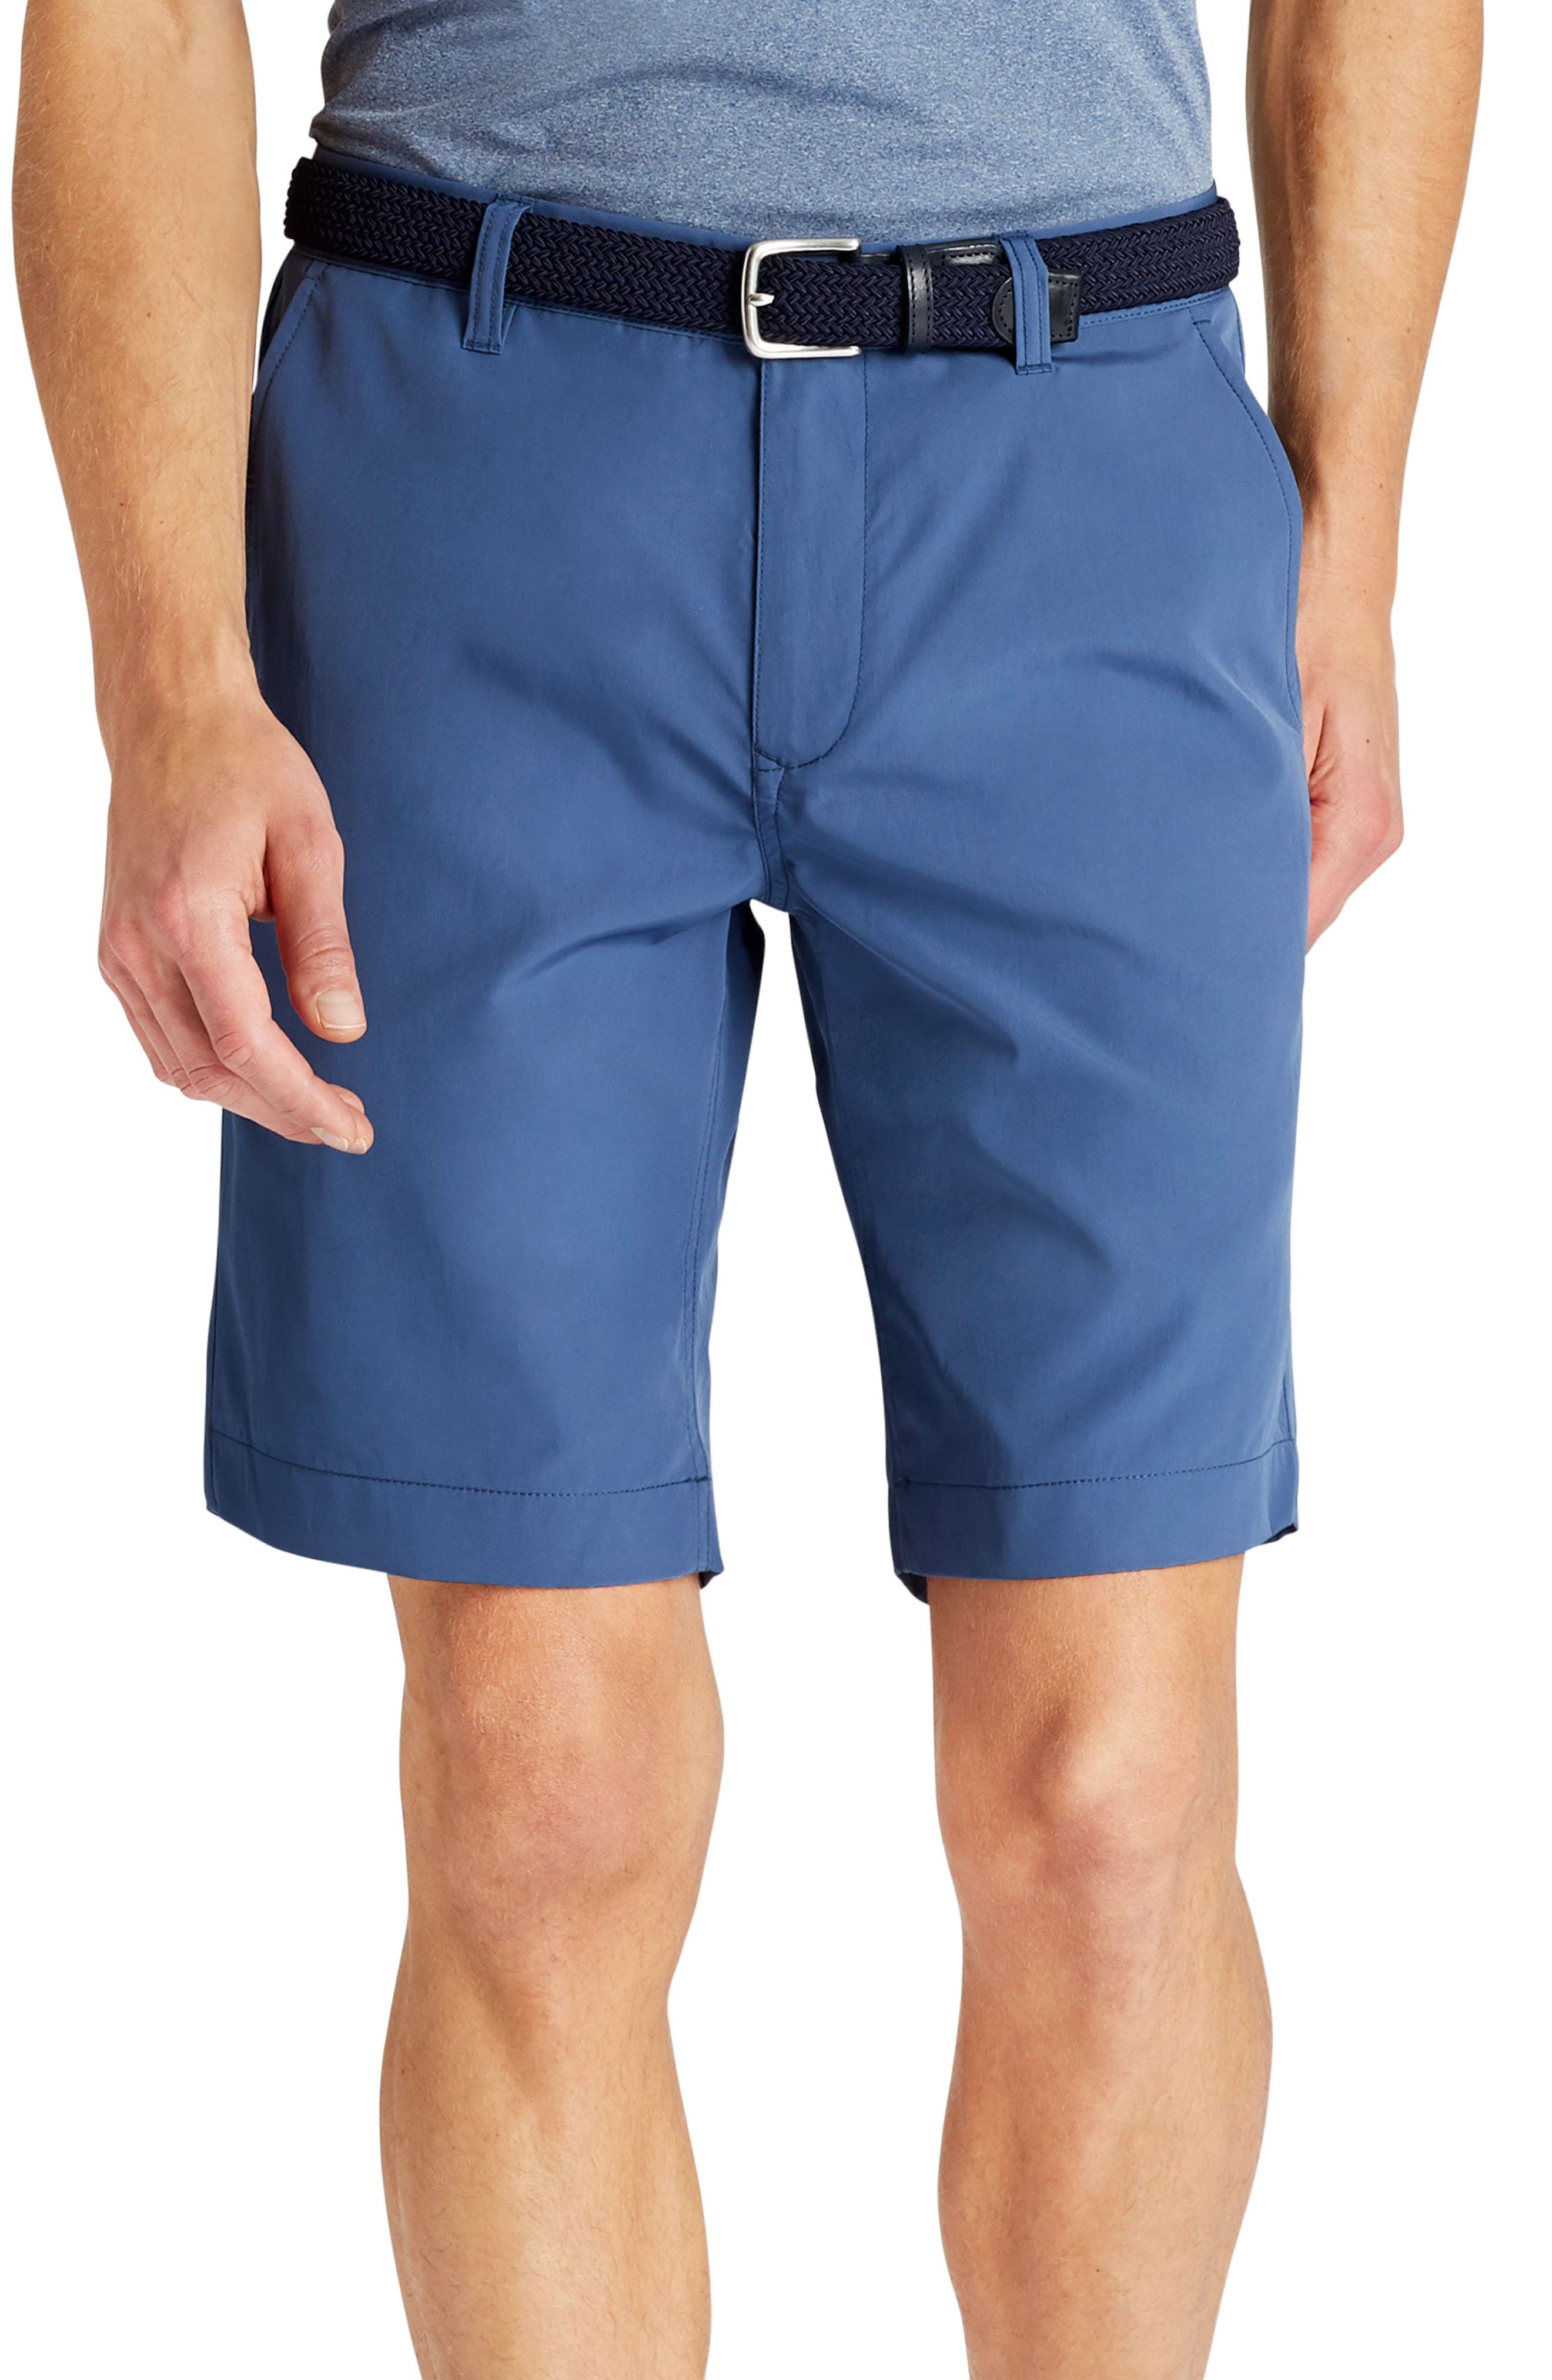 Lightweight Highland Golf Shorts,                             Main thumbnail 1, color,                             Indigo Fade